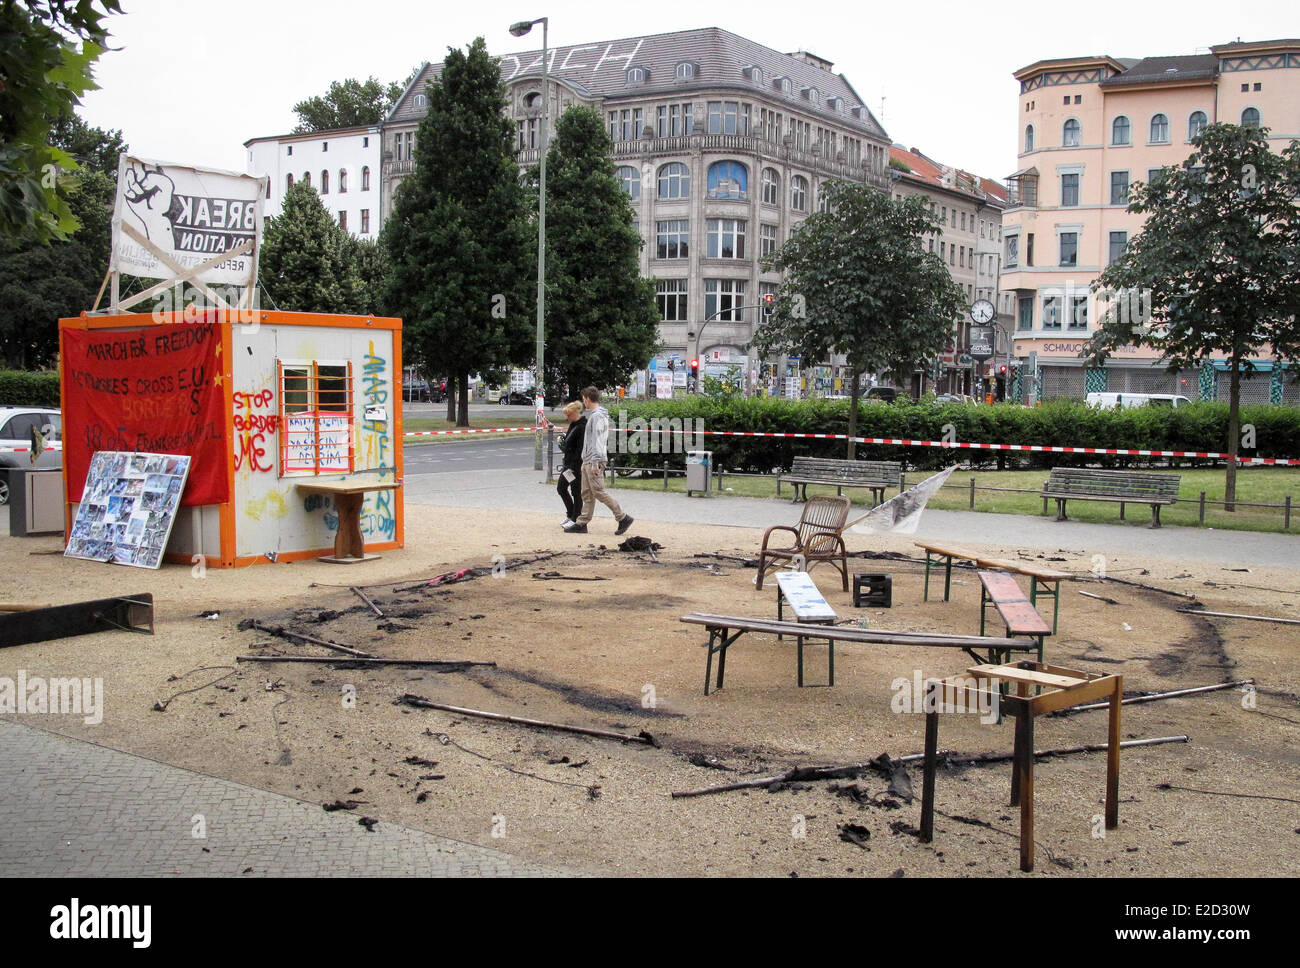 The remains of the burnt down infor tent at Oranienplatz in Berlin, Germany, 19 June 2014. The info tent of the - Stock Image